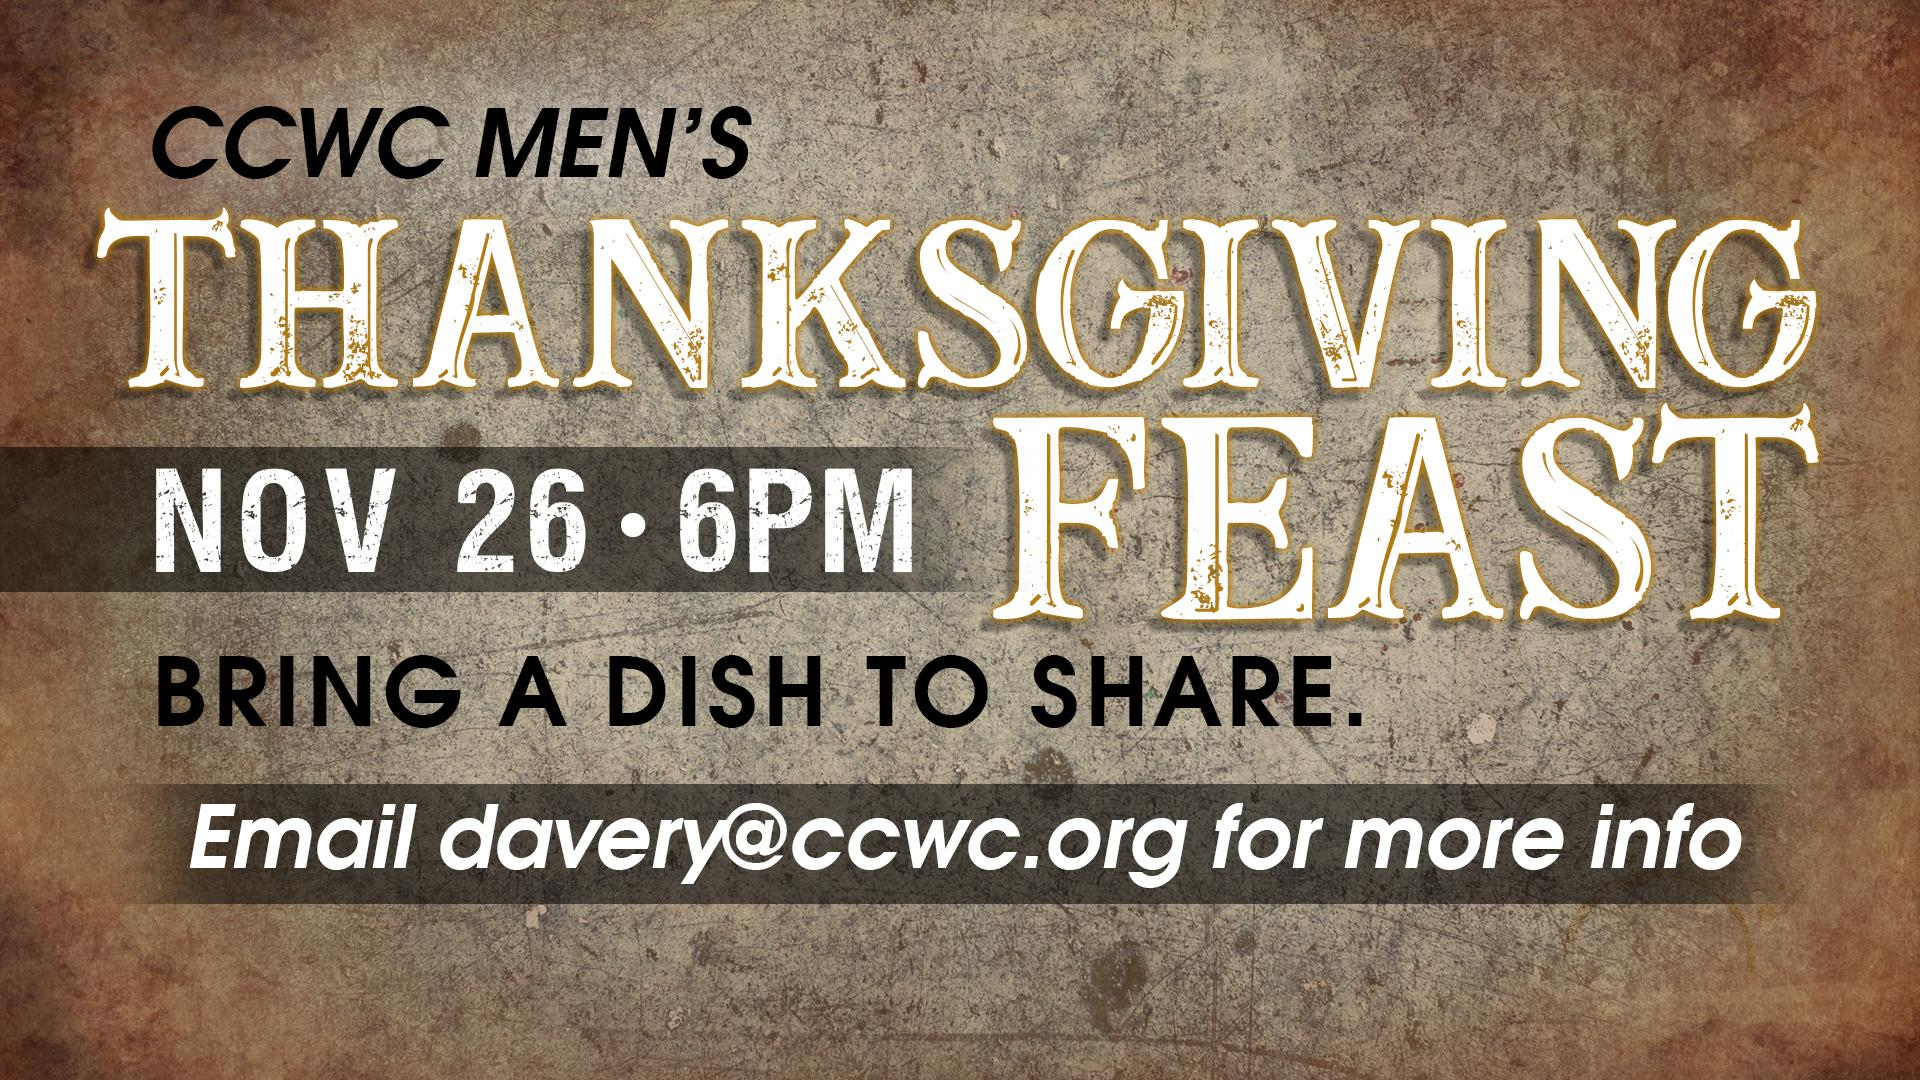 Men's Thanksgiving Feast